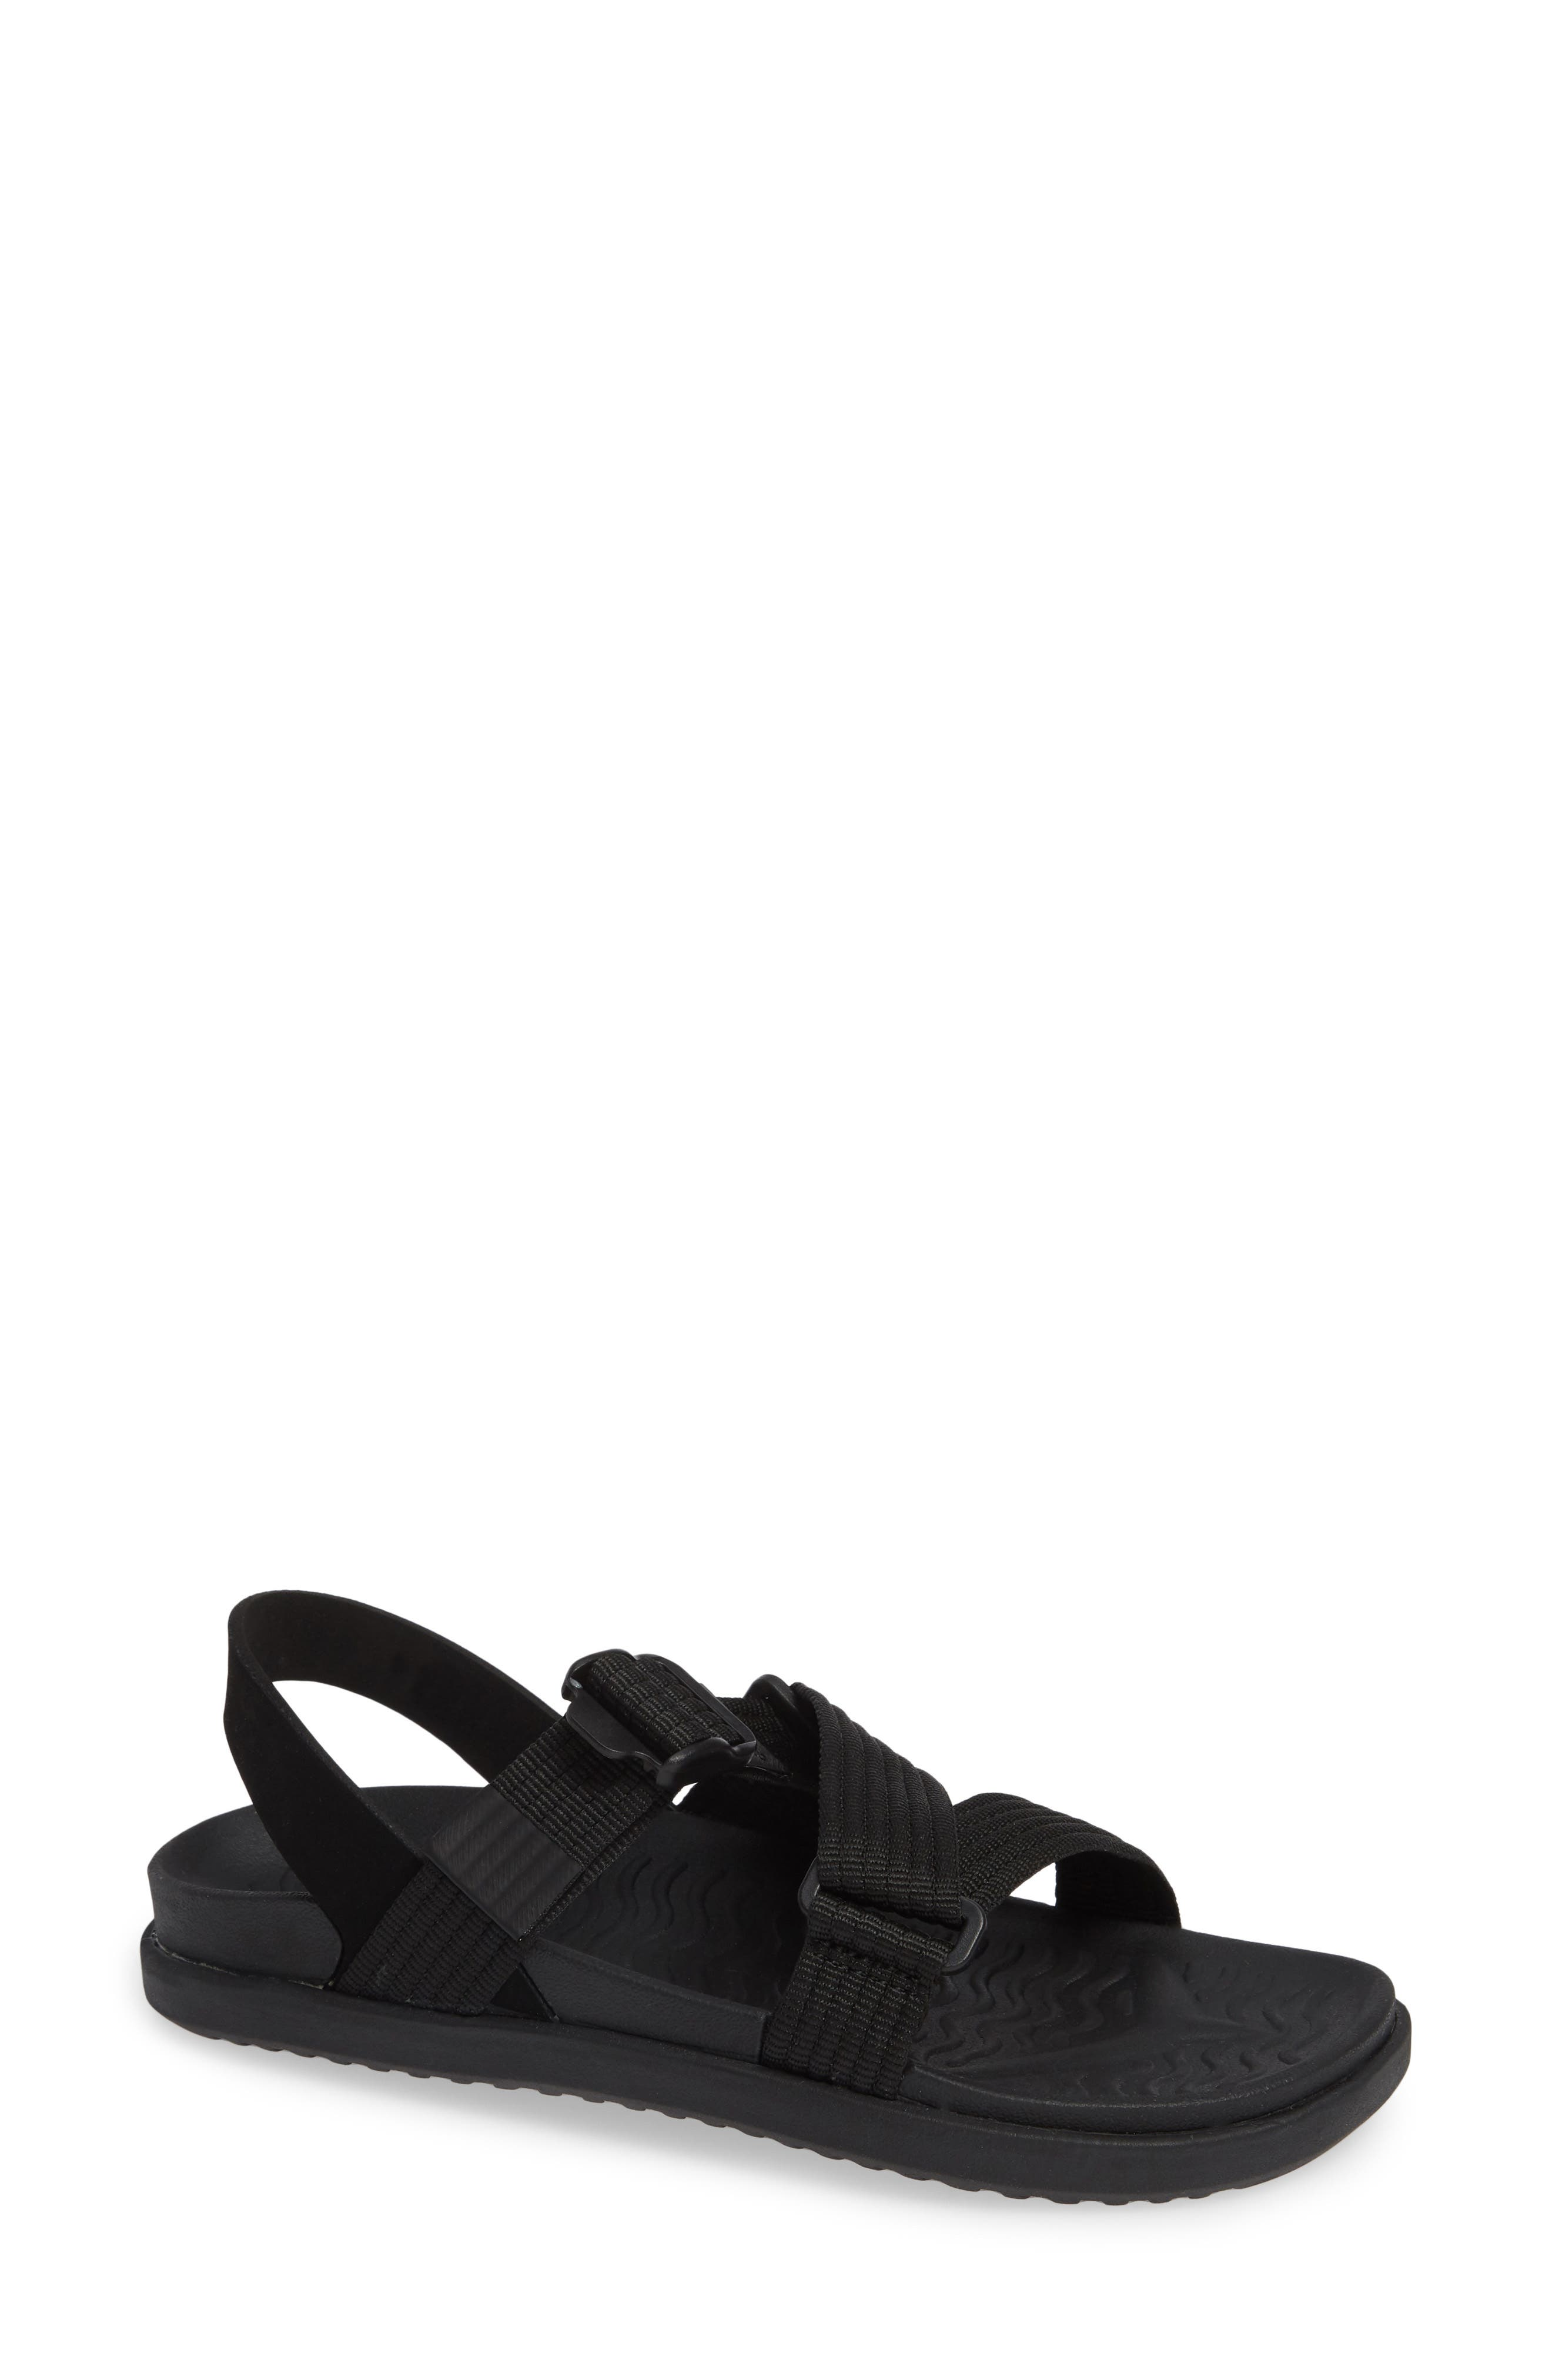 Native Shoes Zurich Vegan Sandal, Black